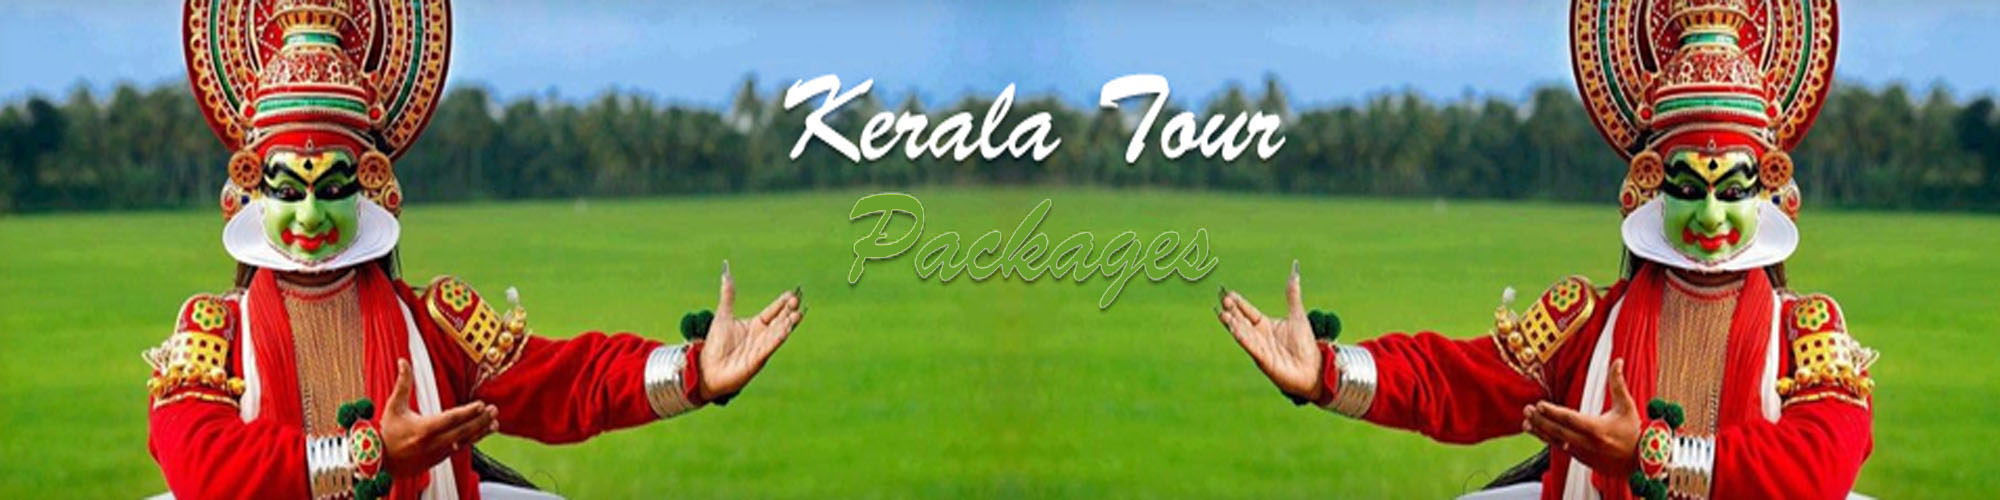 1 kerela tour package site